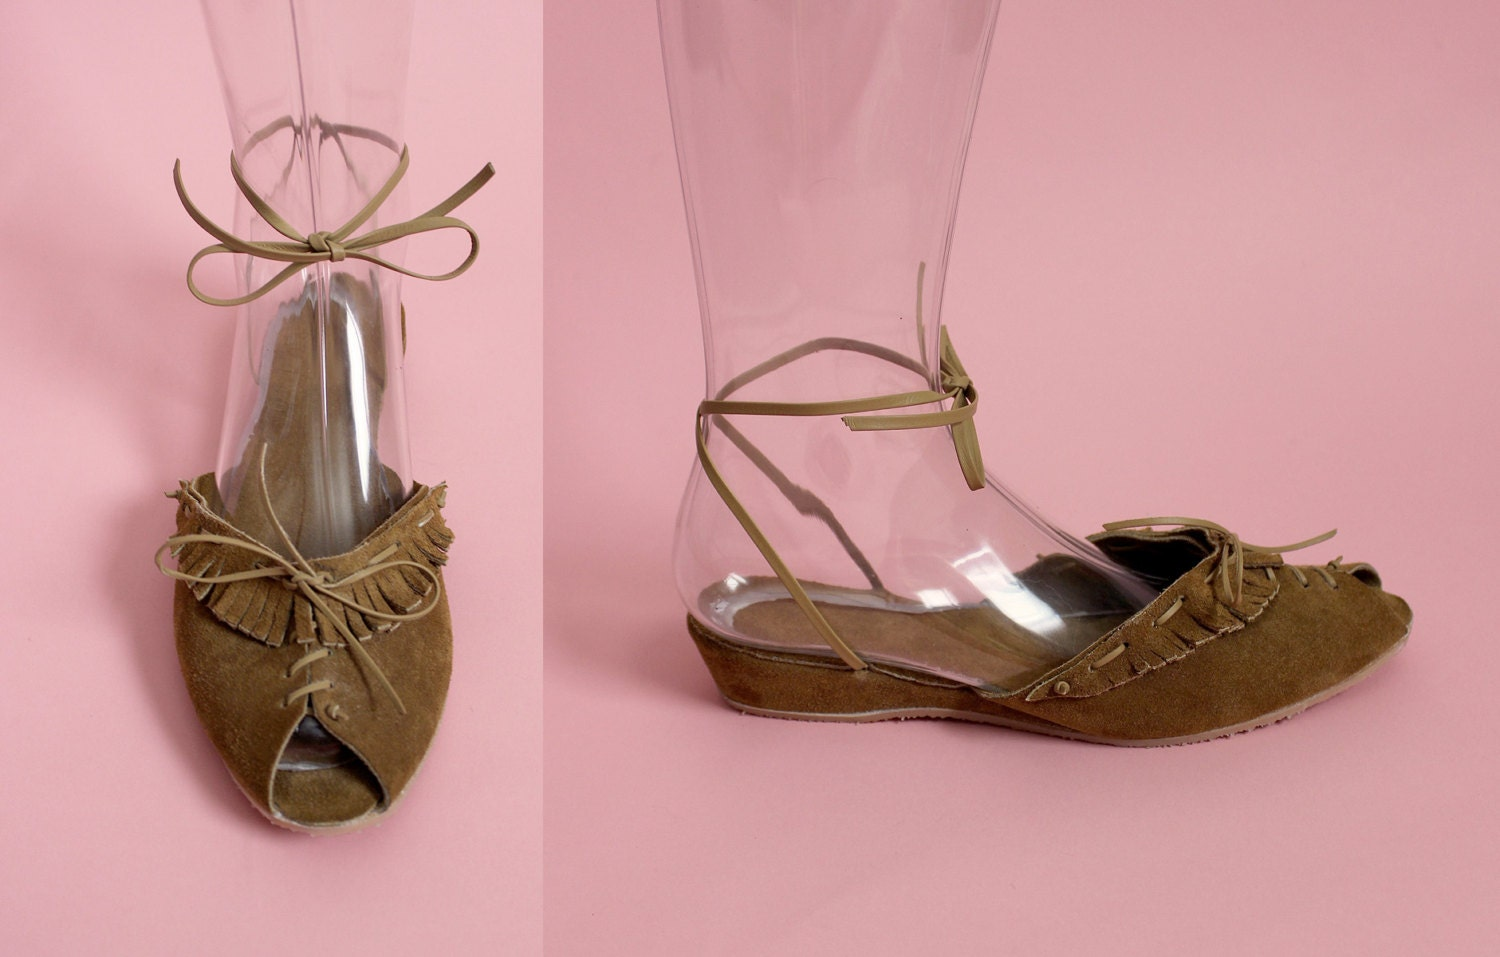 THE RODEO QUEEN - 1940's Inspired Tan Rough-Out Leather Adjustable Ankle Strap Wedge Sandal w/ Fringe Detail & Lace-Up Front - Sizes 5 to 12